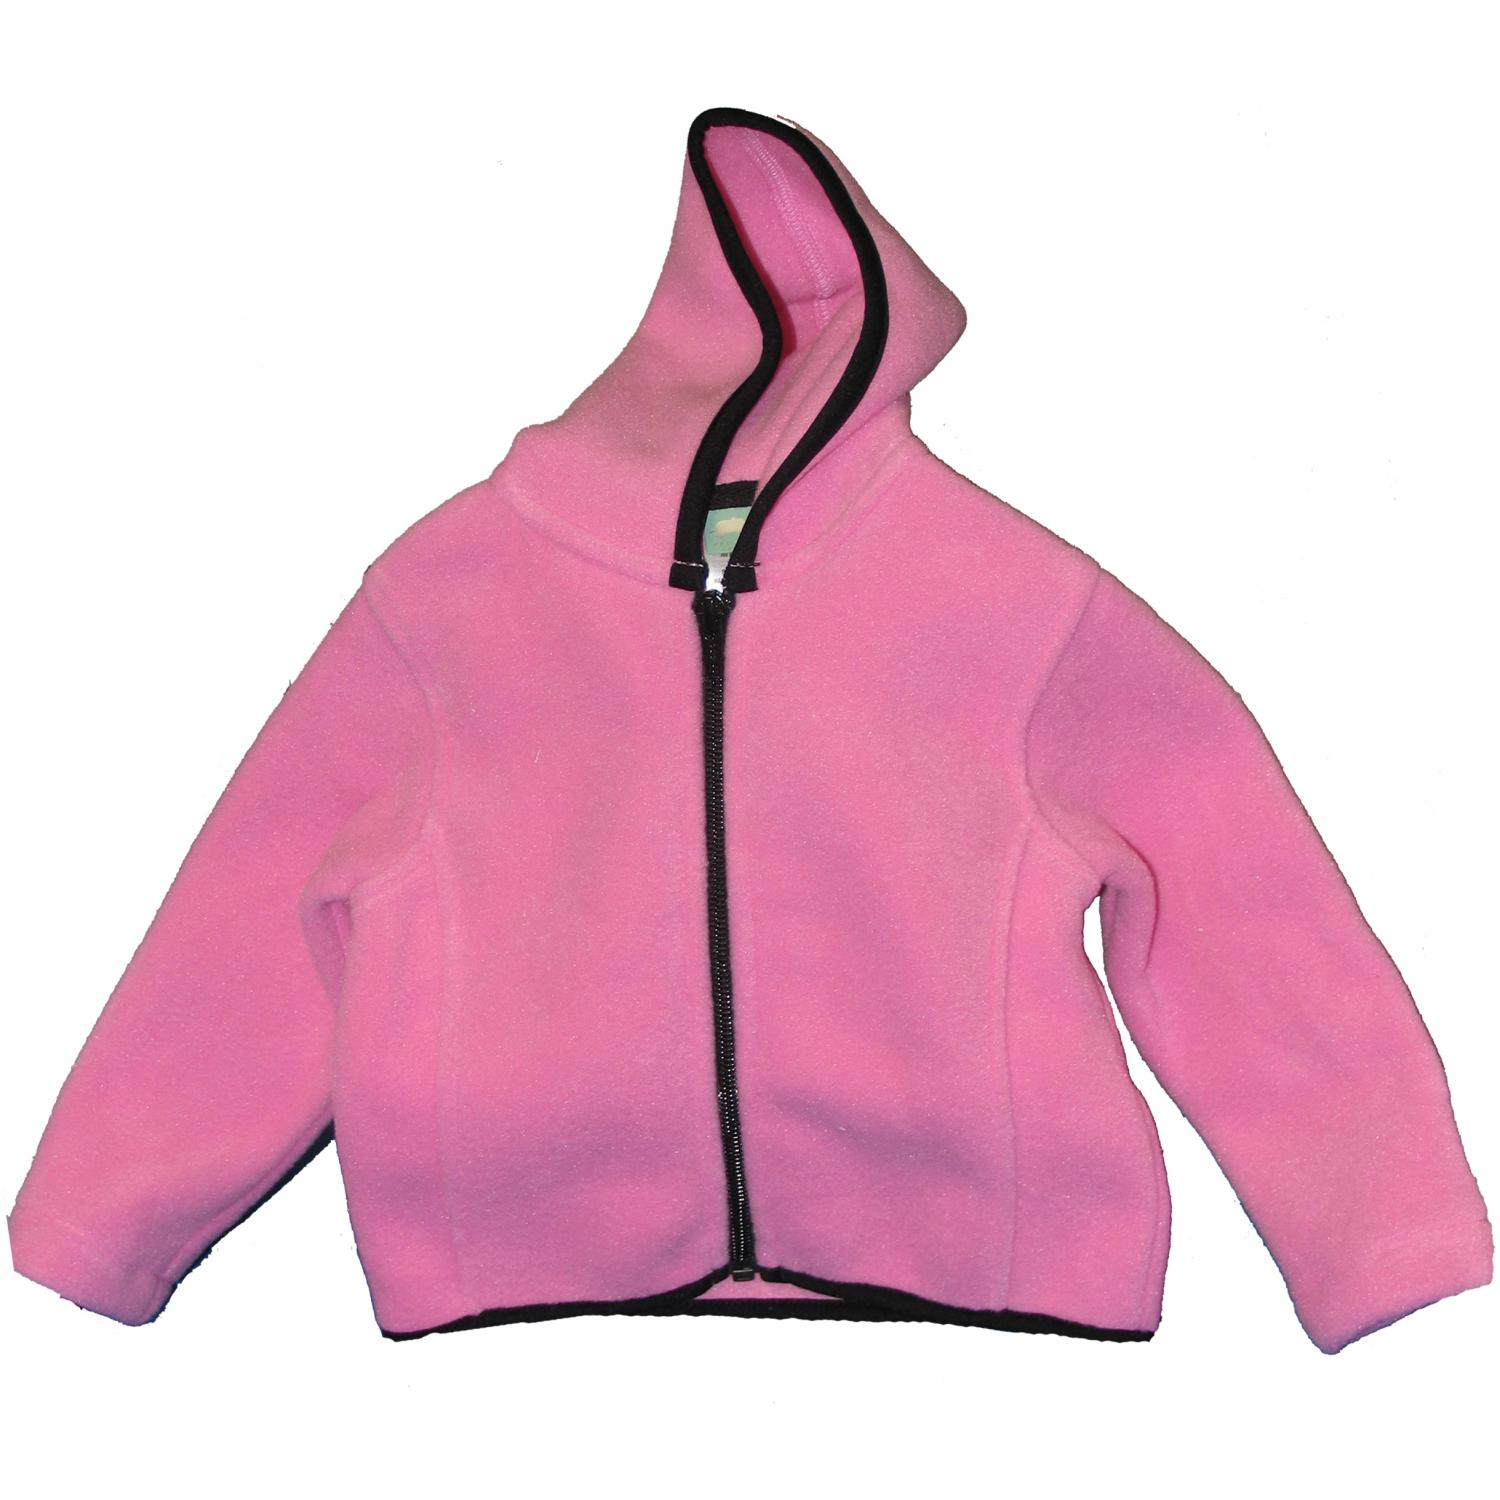 Precious Cargo Infant R-tek Fleece Full Zip Jacket 24m - Candy Pink